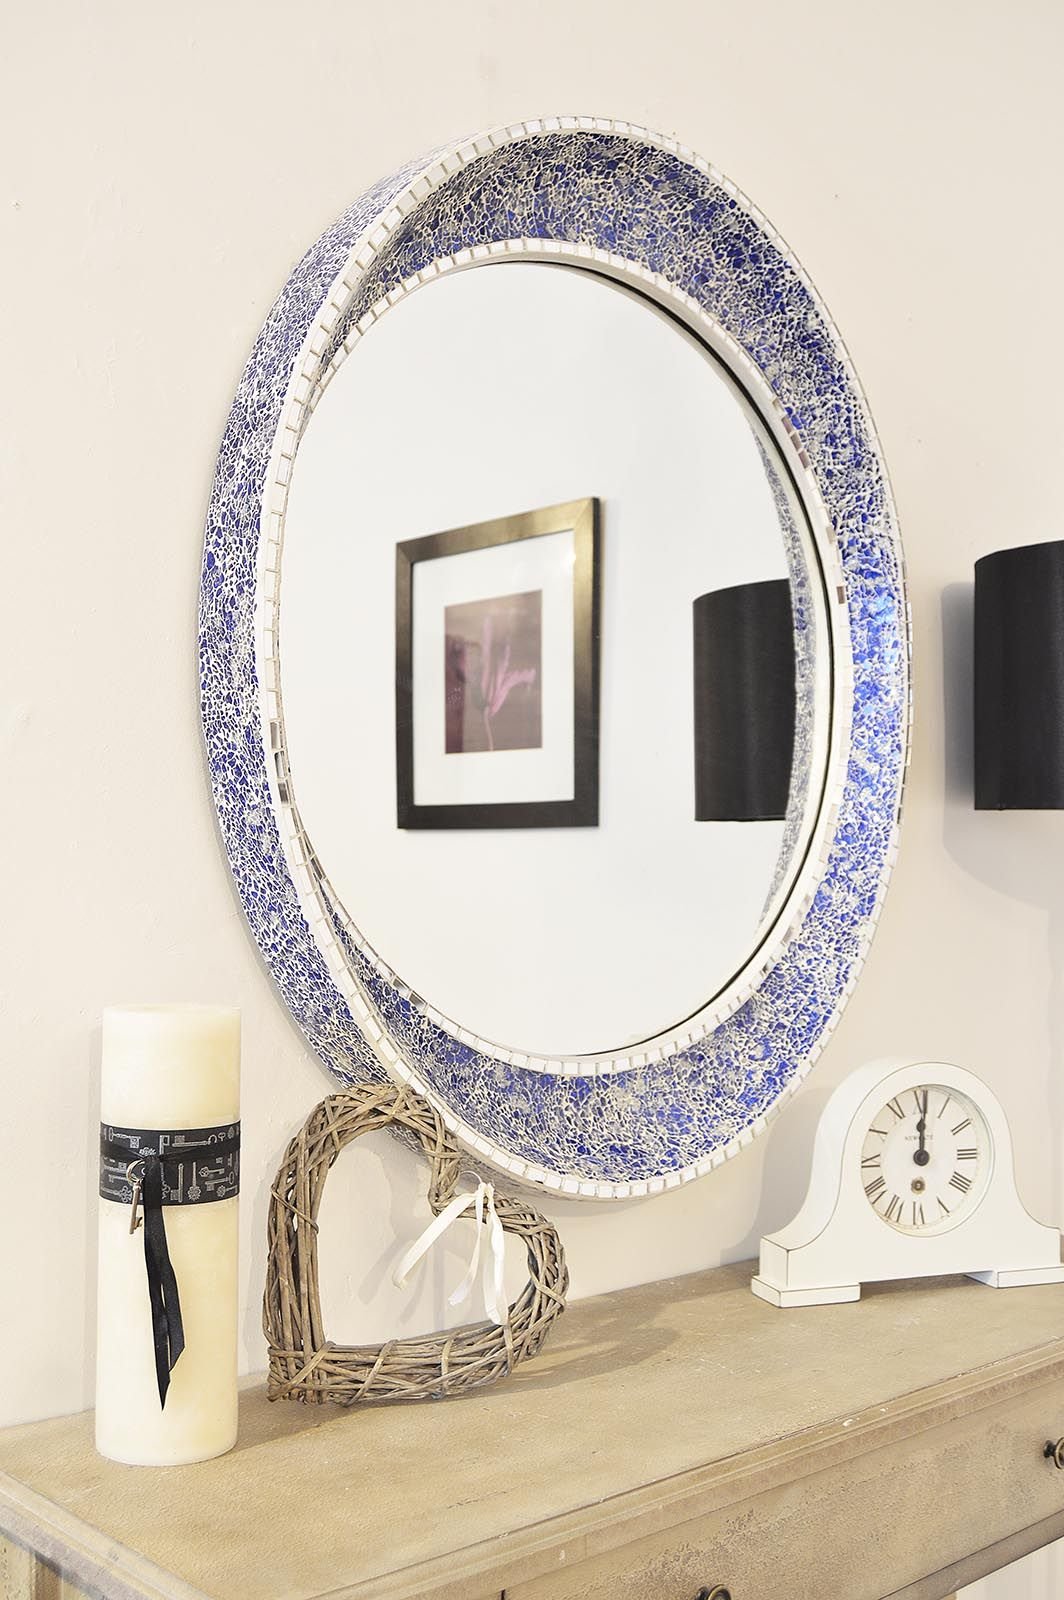 Mirror Outlet Has The Largest Range Of Antique Design Mirrors Including Large Round Mosaic Blue Wall X